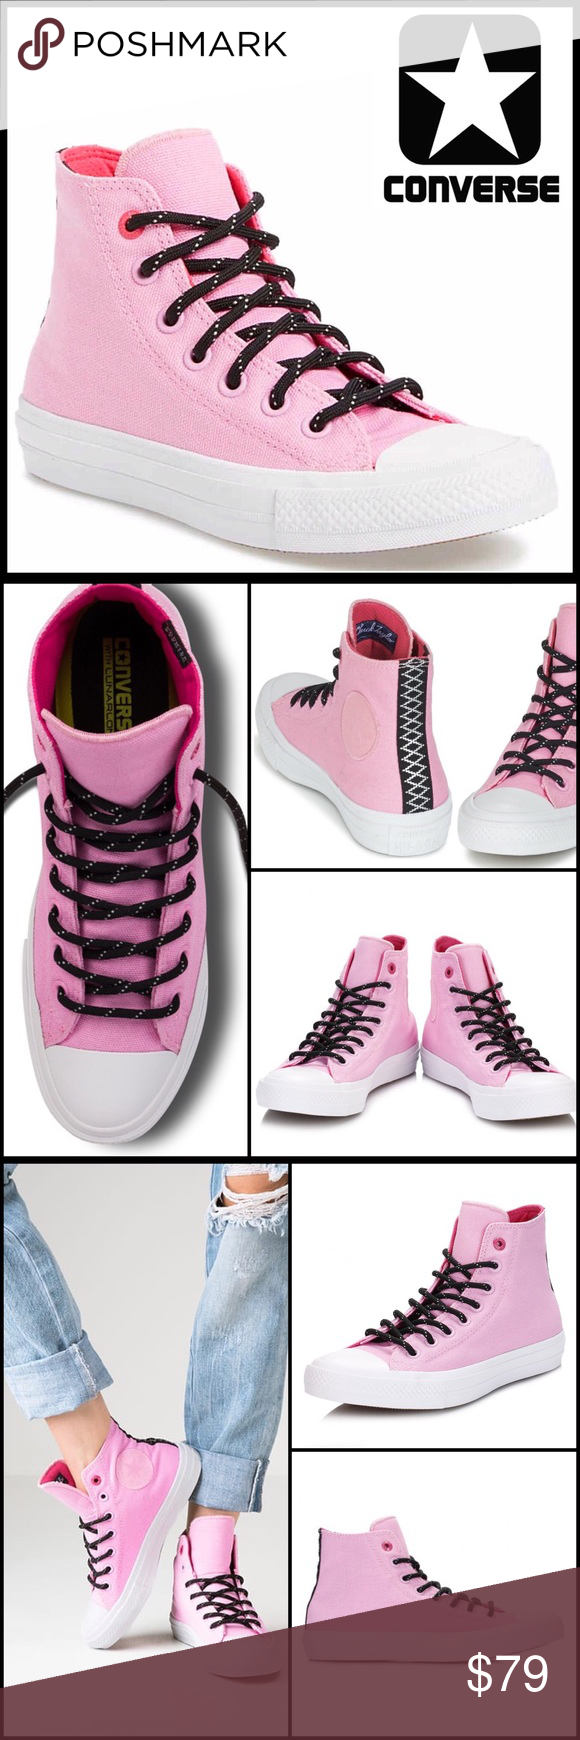 e68b3bc0f27c9f ❗️1-HOUR SALE❗️CONVERSE STYLISH High Tops CONVERSE STYLISH SNEAKERS Water  Repellent Shield Hi-Tops SIZING  UNISEX